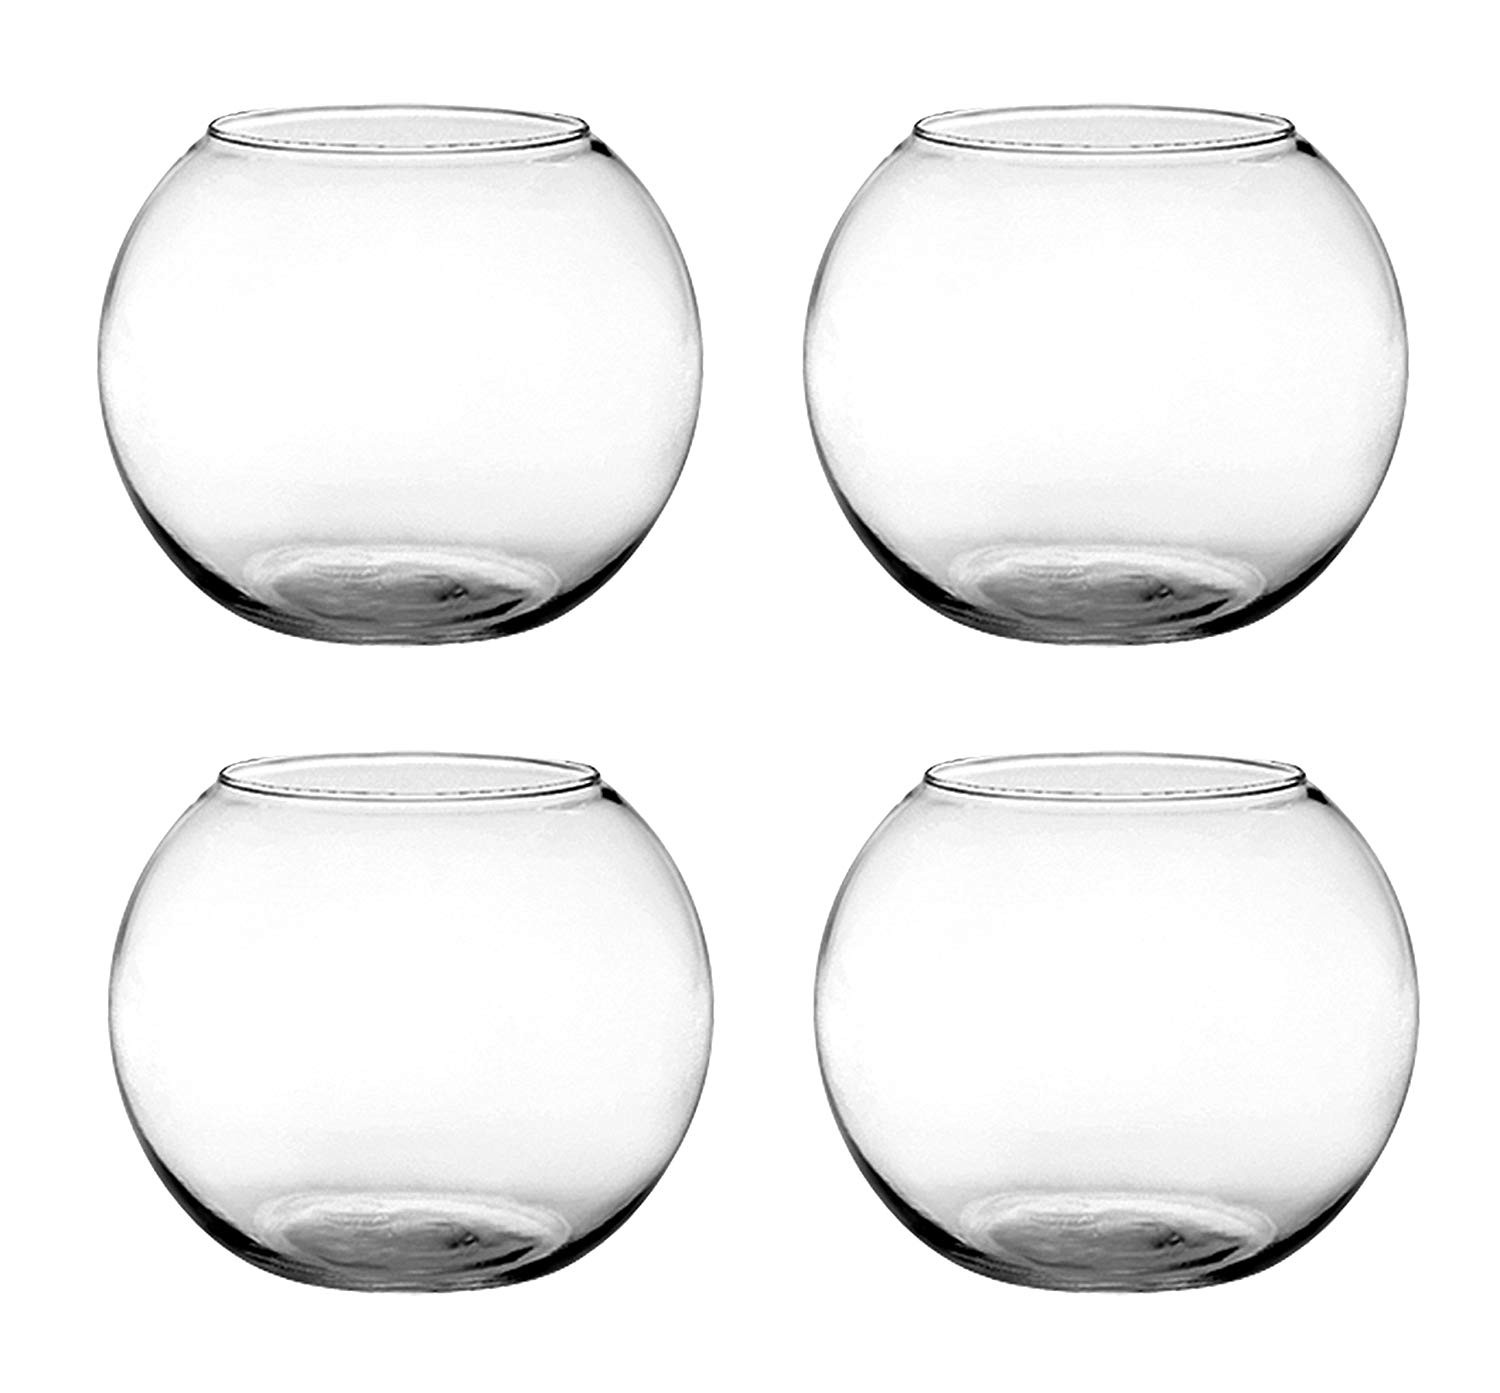 plastic round cylinder vases of amazon com set of 4 syndicate sales 6 inches clear rose bowl with amazon com set of 4 syndicate sales 6 inches clear rose bowl bundled by maven gifts garden outdoor